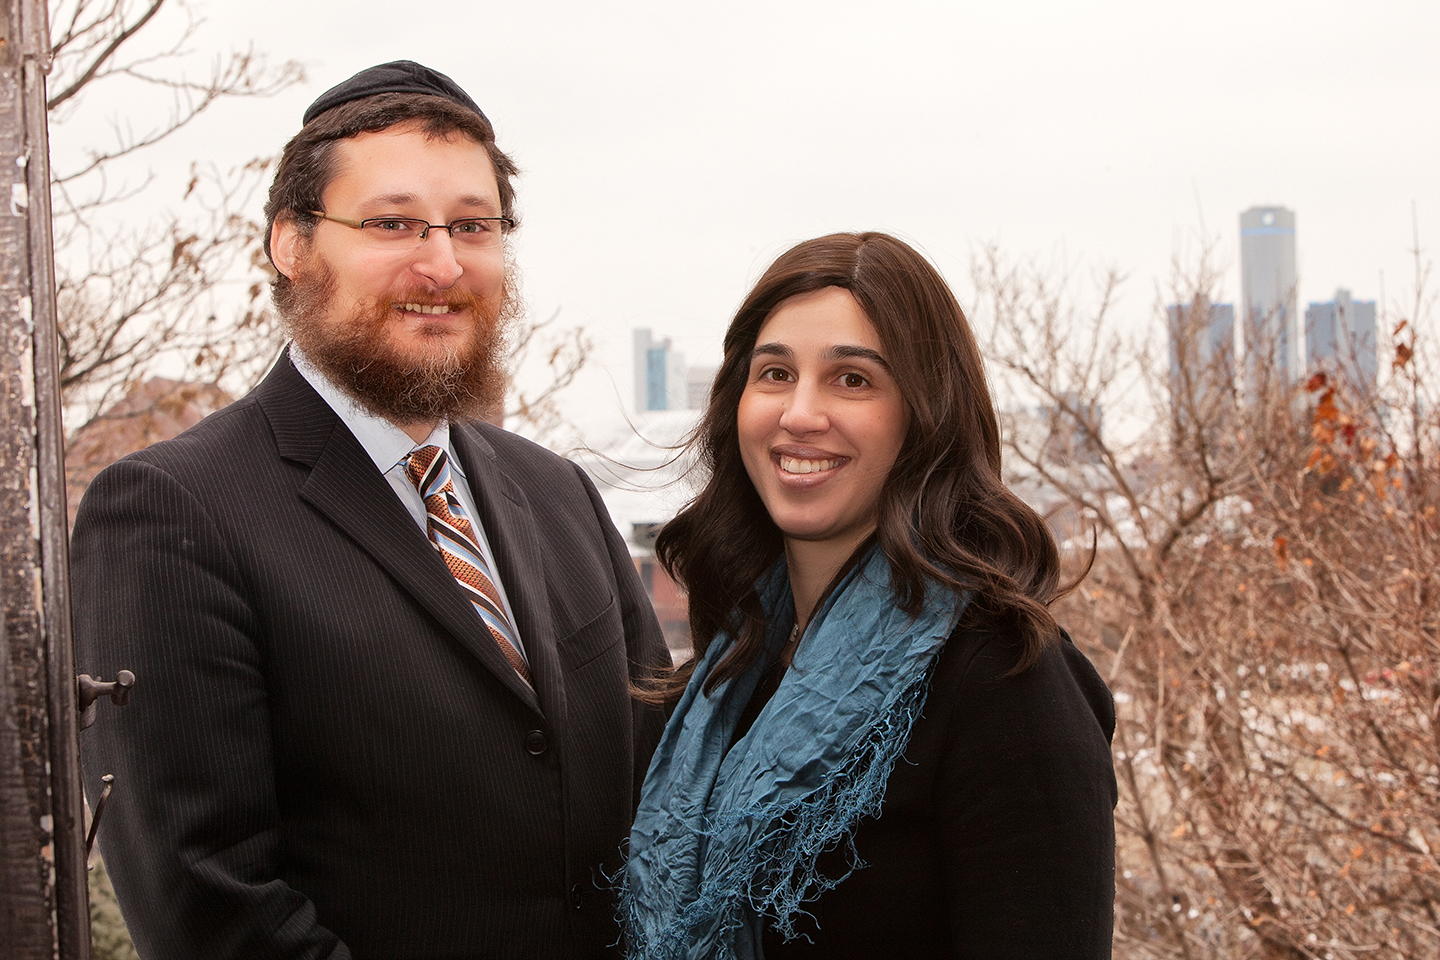 Yisrael and Devorah Pinson